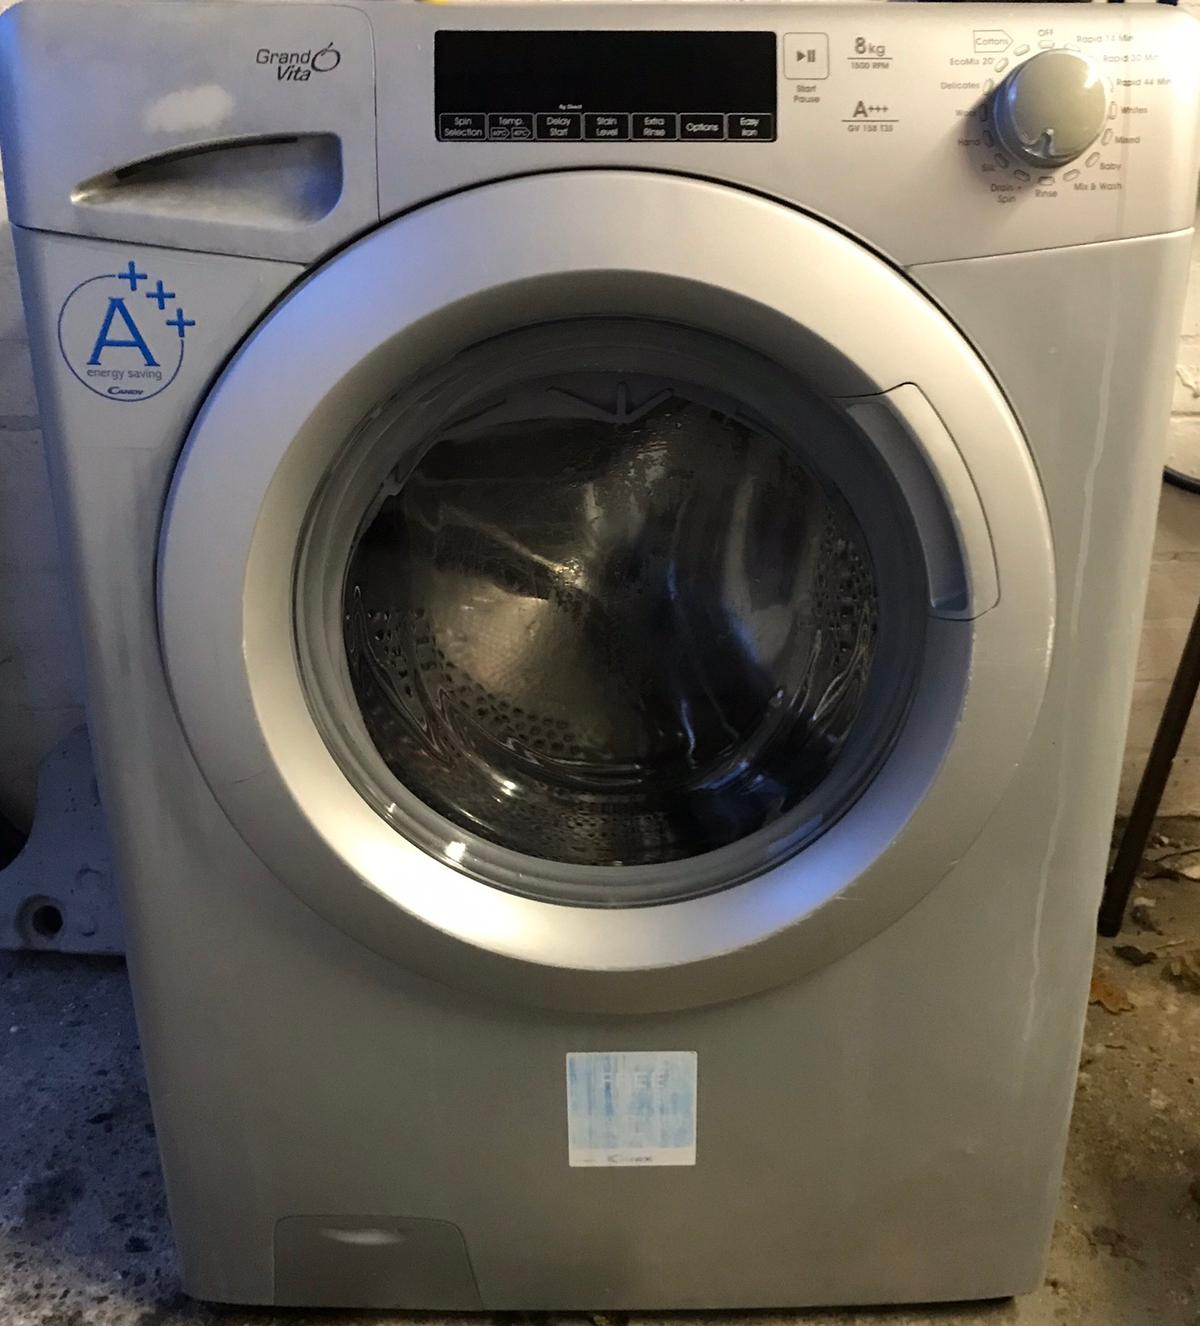 Candy washing machine 8kg 1500 spin Perfect working order Couple of cosmetic marks